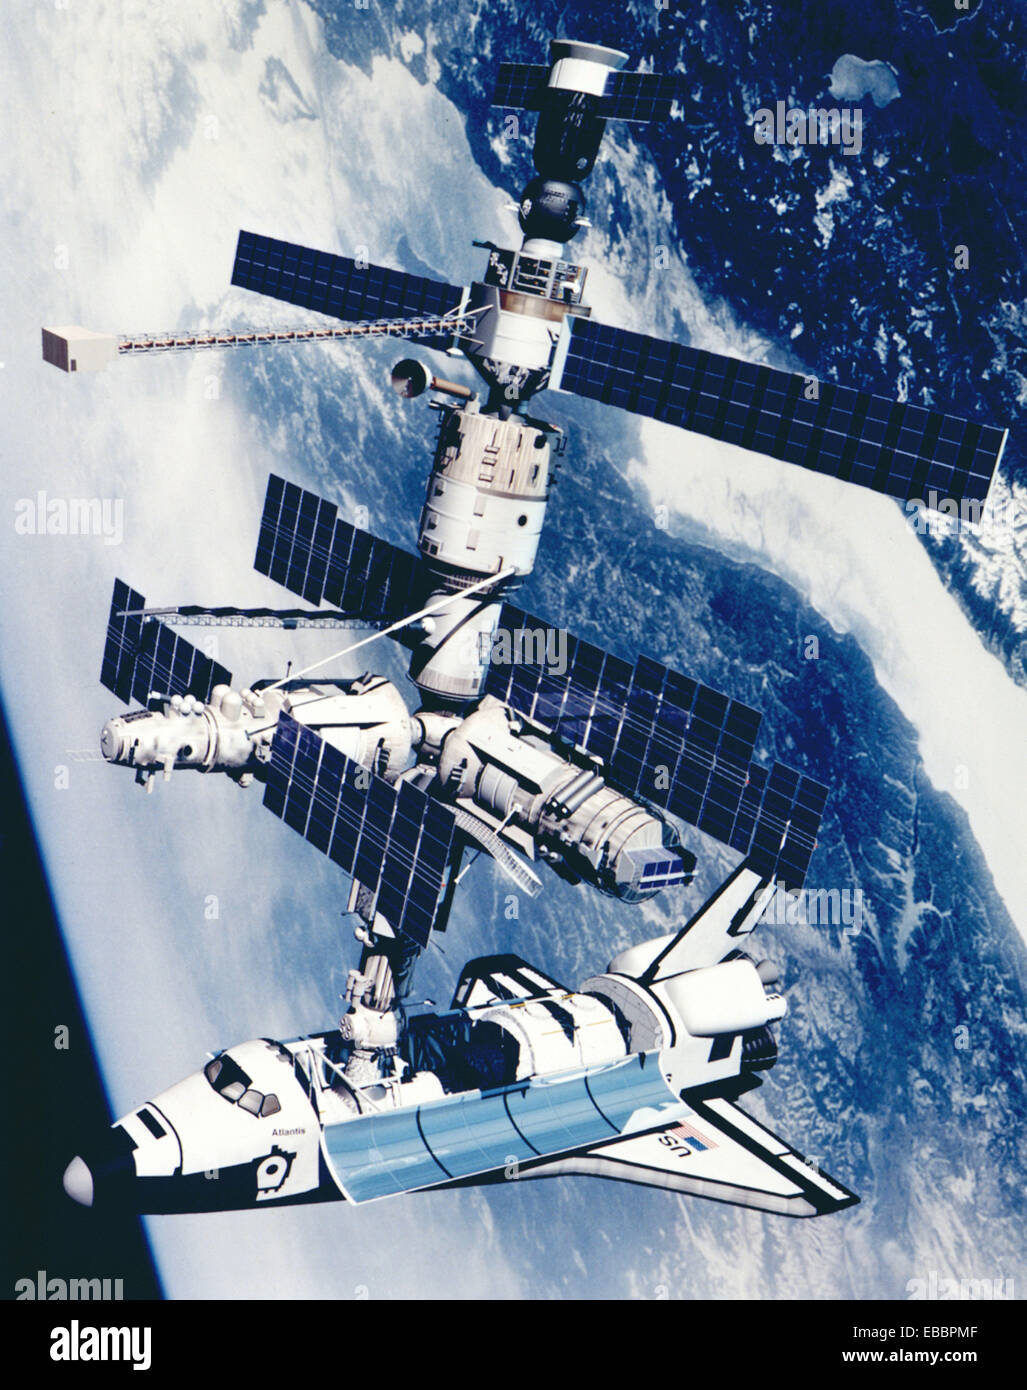 Technical Rendition of STS-71 docked to Mir. Shown is a technical rendition of the Space Shuttle Atlantis docked - Stock Image